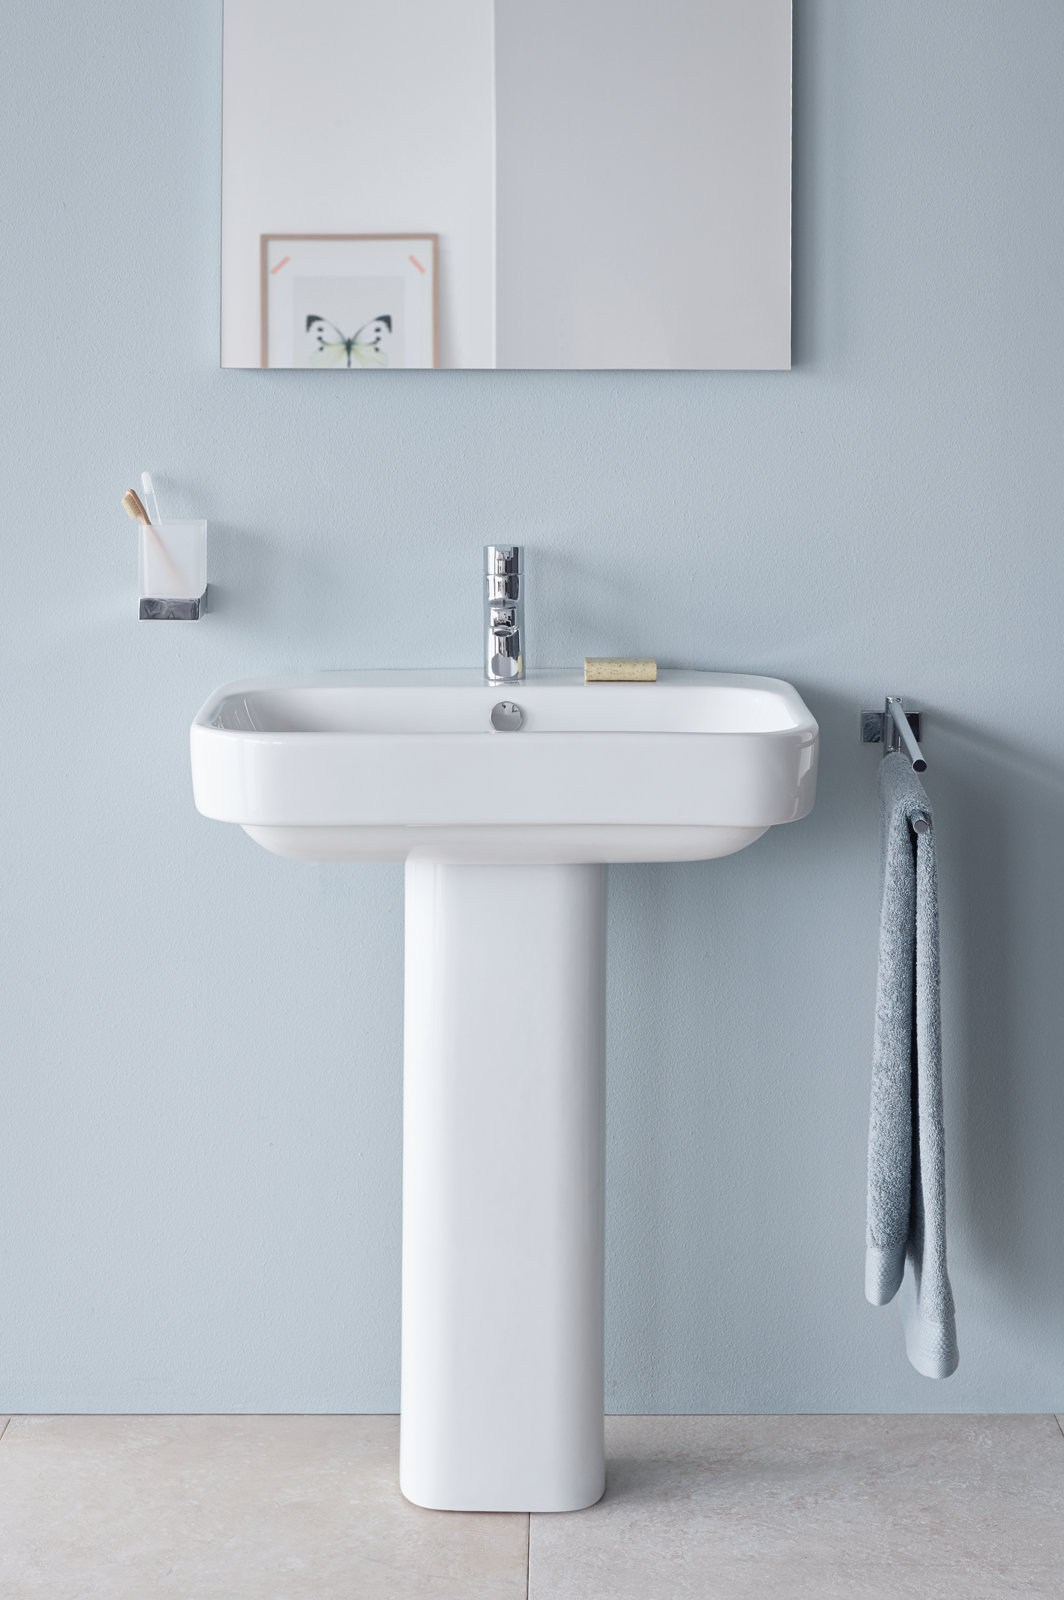 Designer Toilets And Sinks Toilets Sinks And More Designer 39s Plumbing